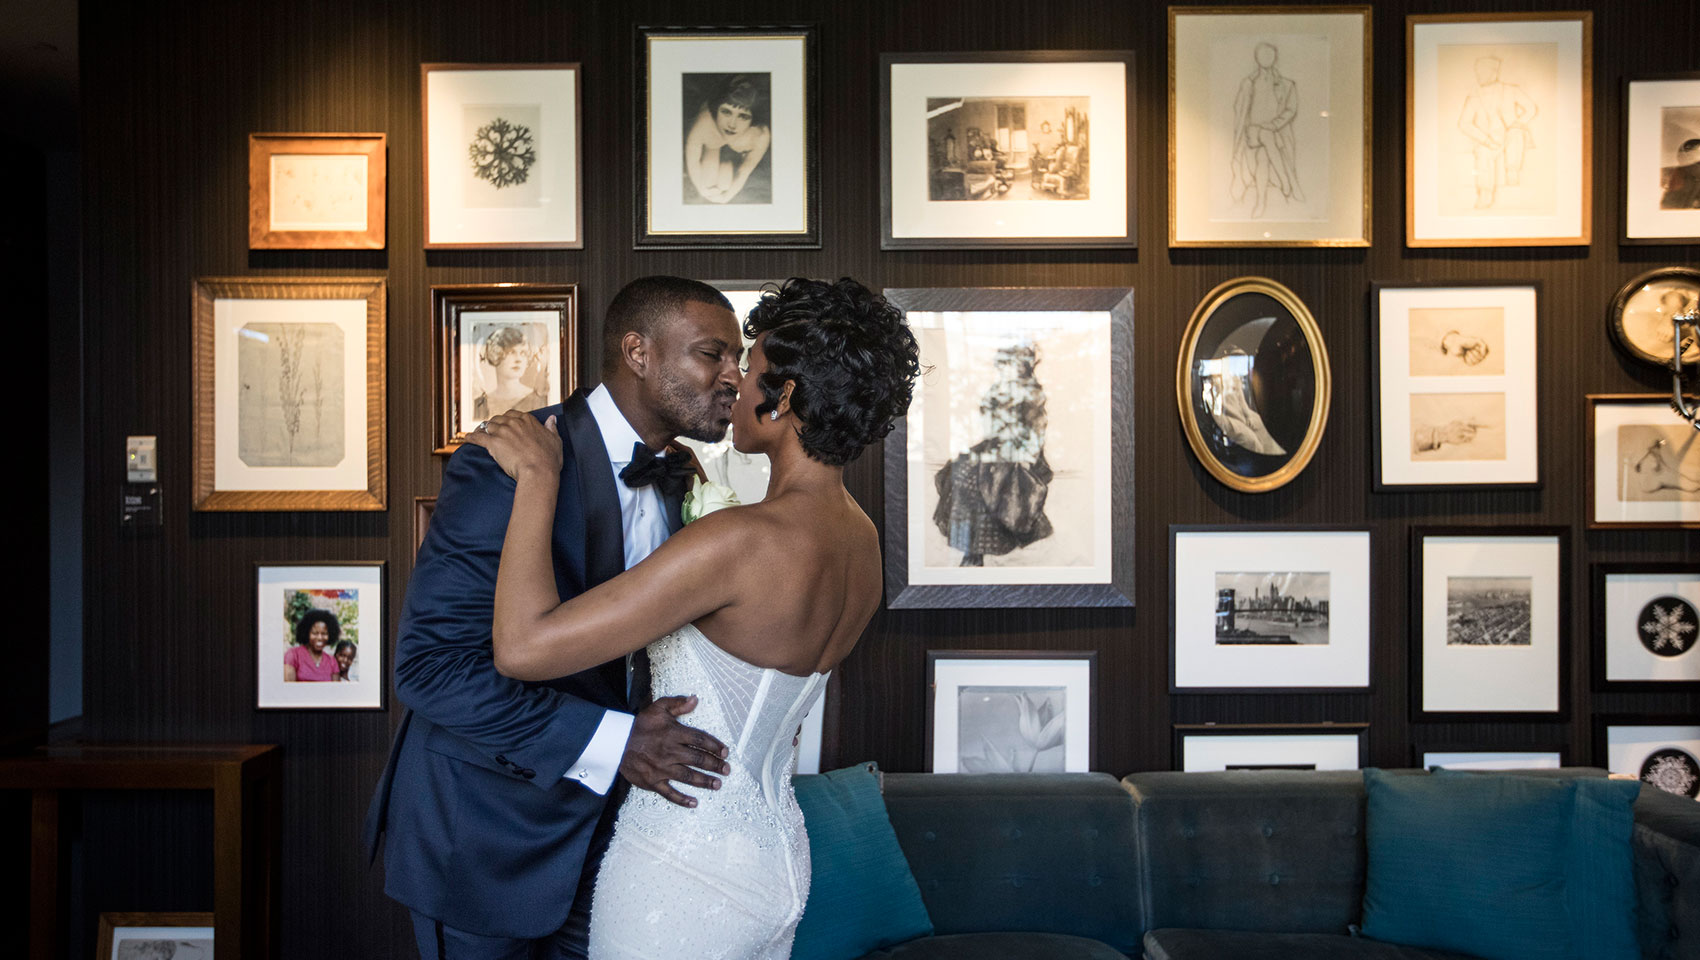 Bride and groom kissing in front of wooden wall with framed pictures and portraits